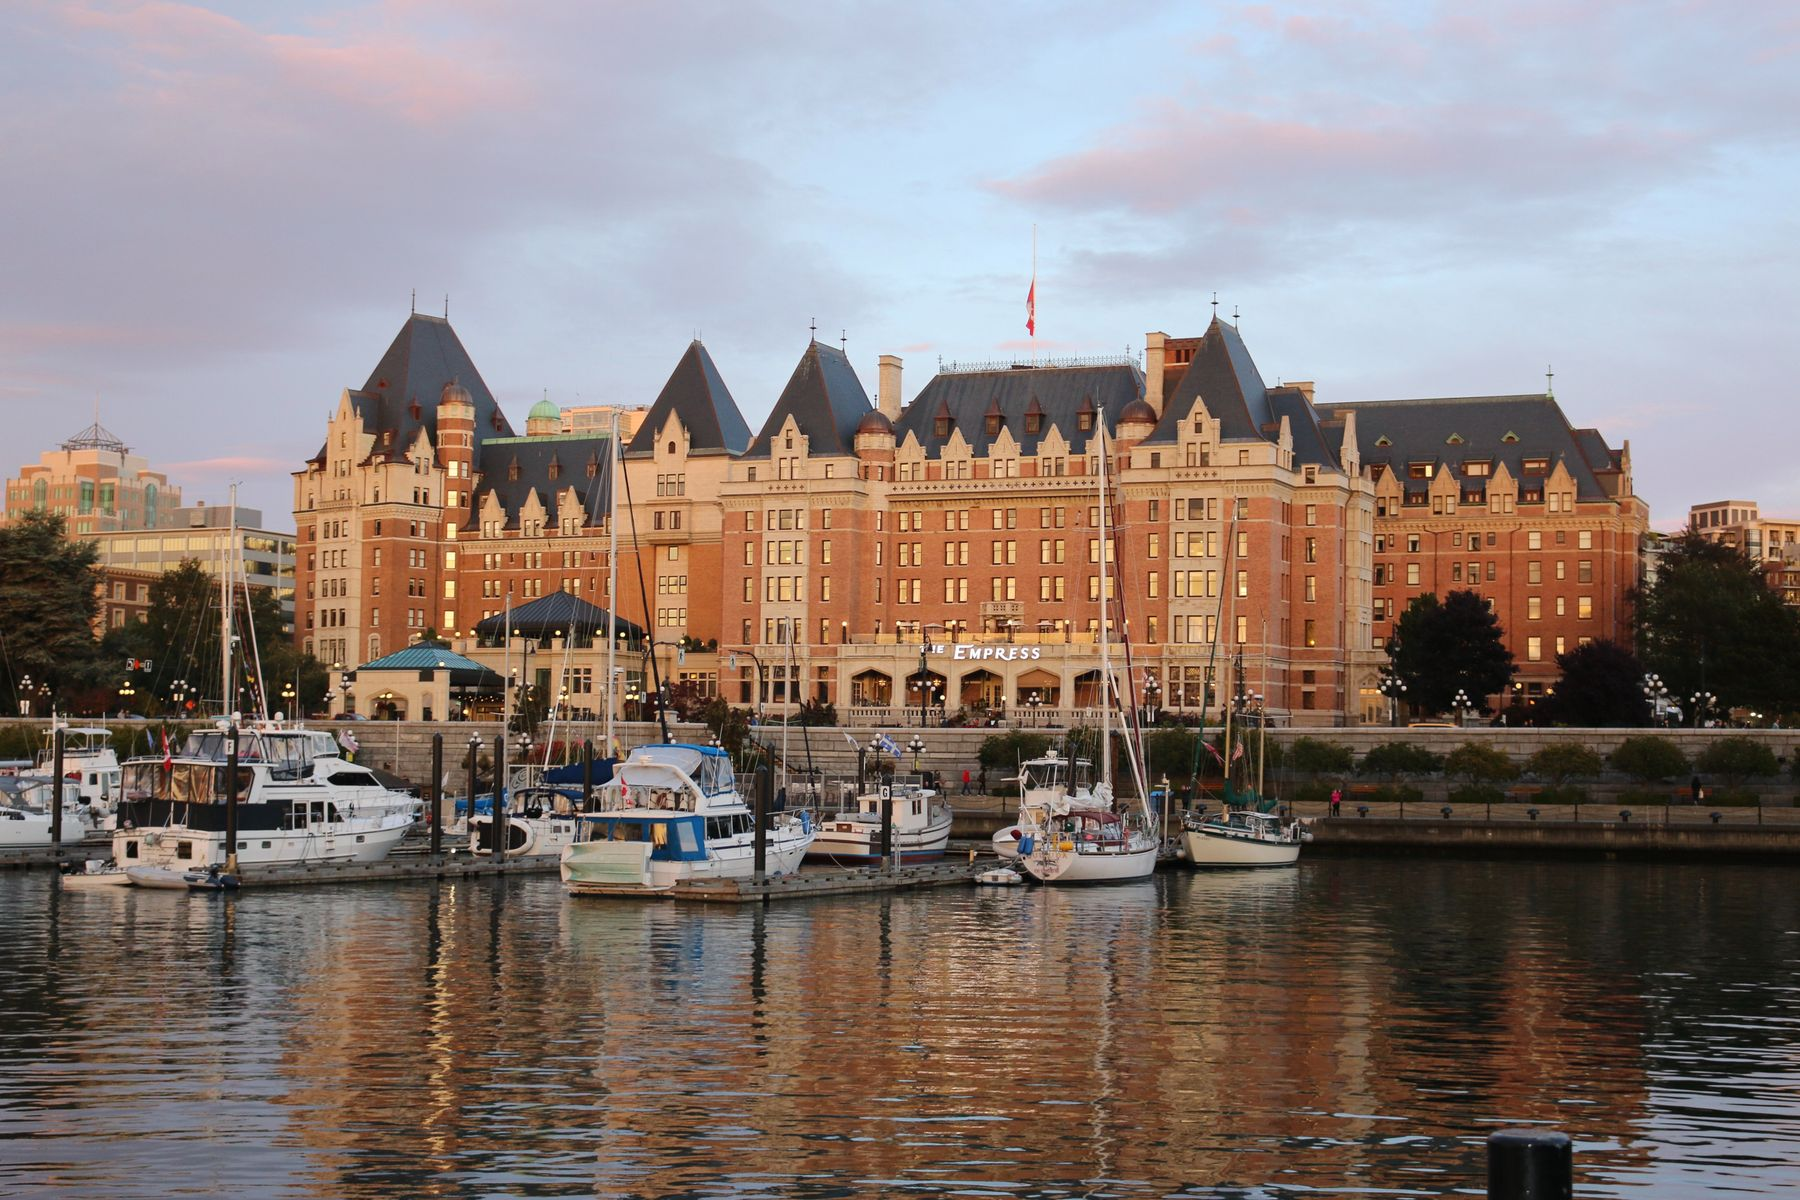 The harbour in Victoria BC, one of the warmest places to visit in Canada in winter